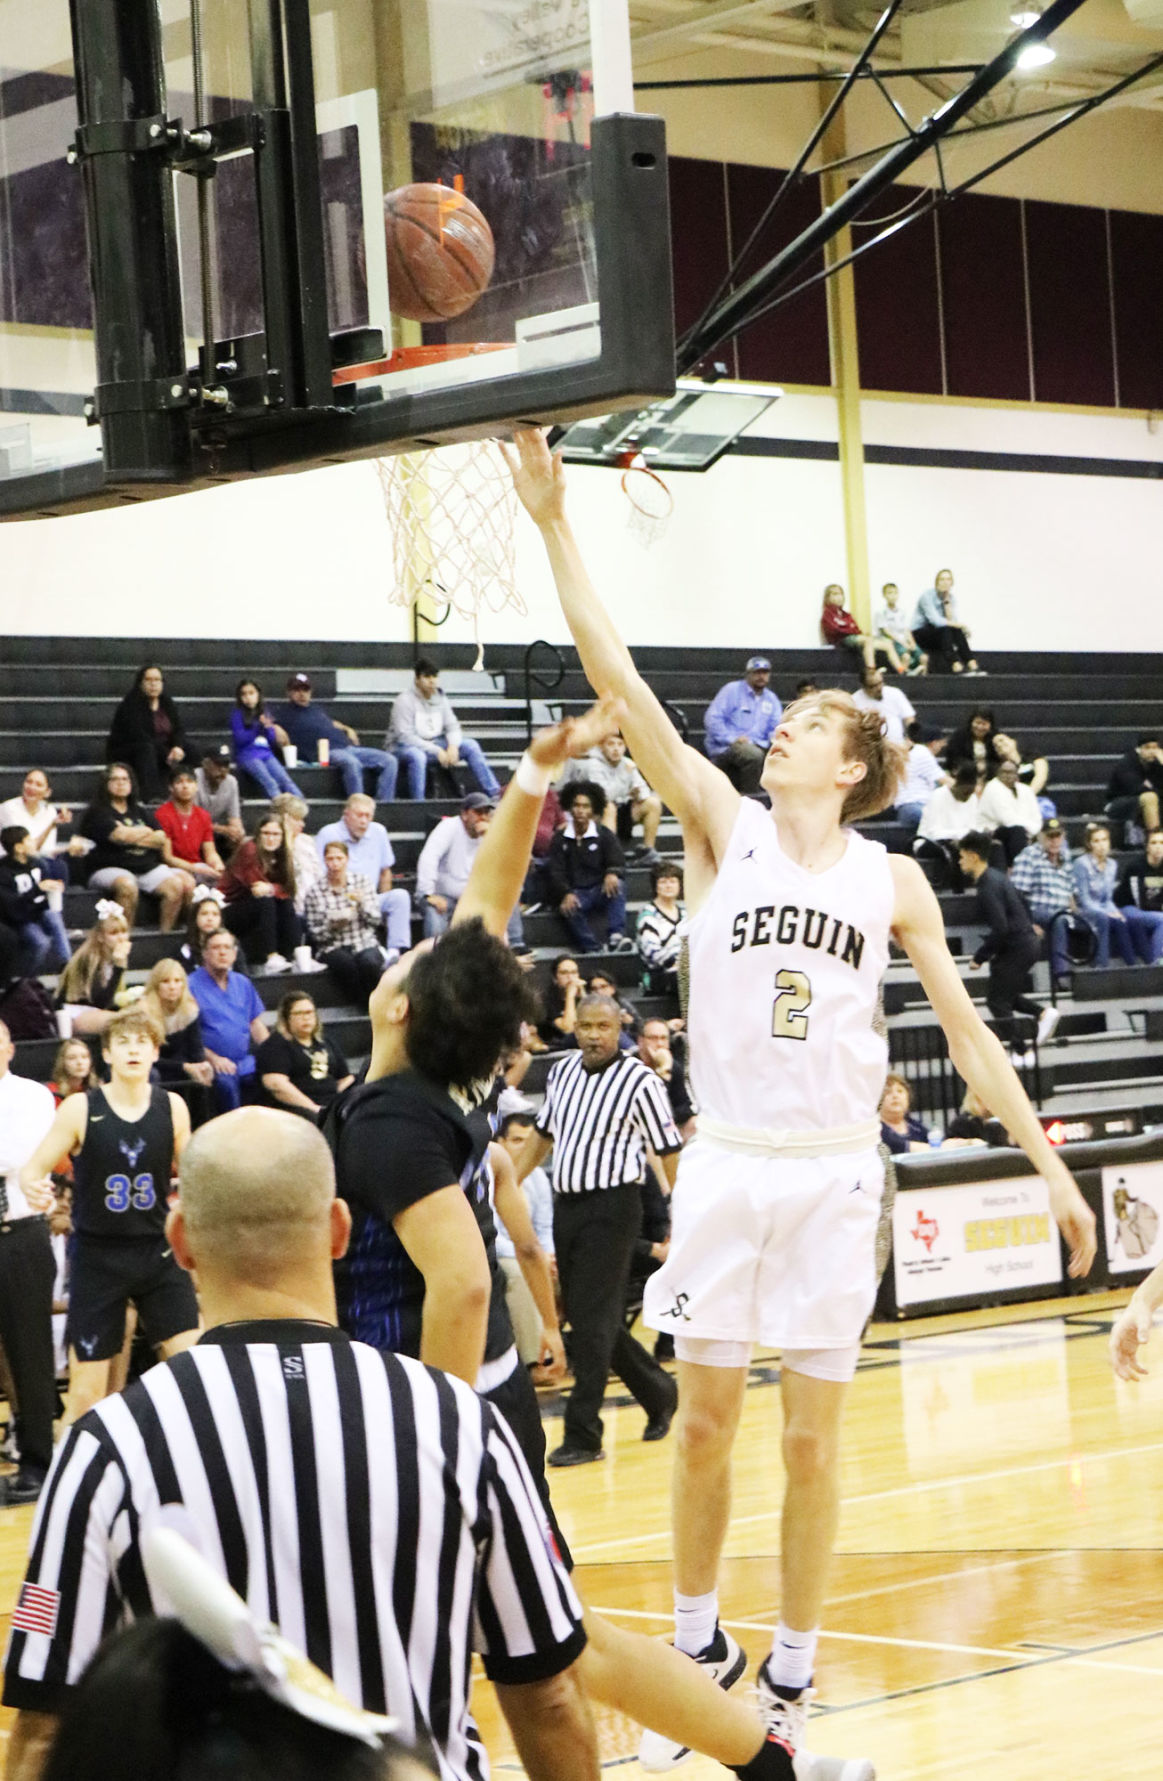 Seguin basketball